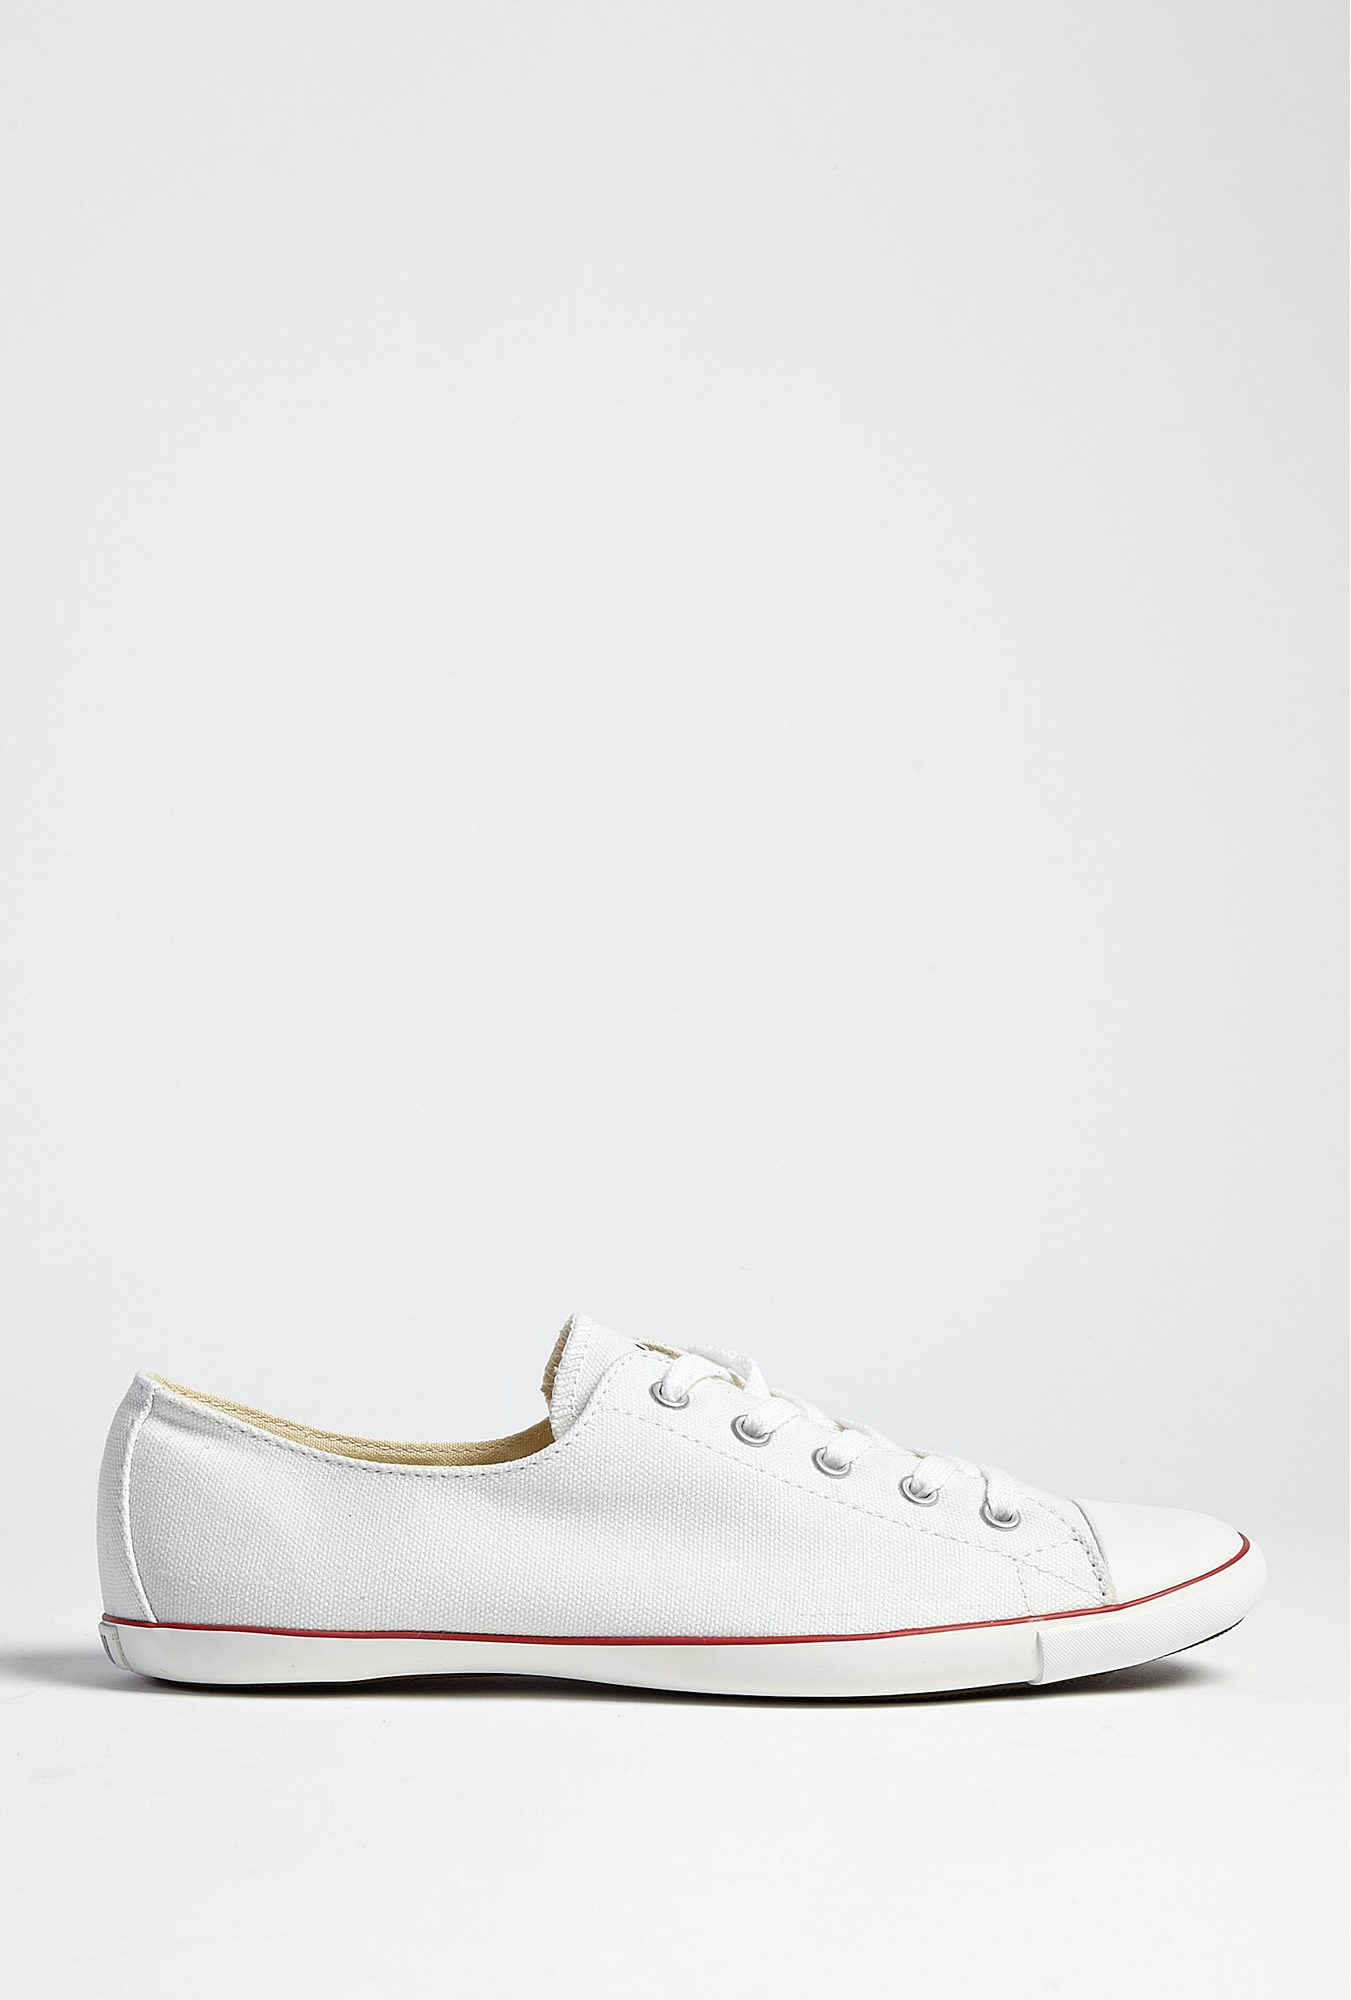 converse white all star light plimsolls in white lyst. Black Bedroom Furniture Sets. Home Design Ideas